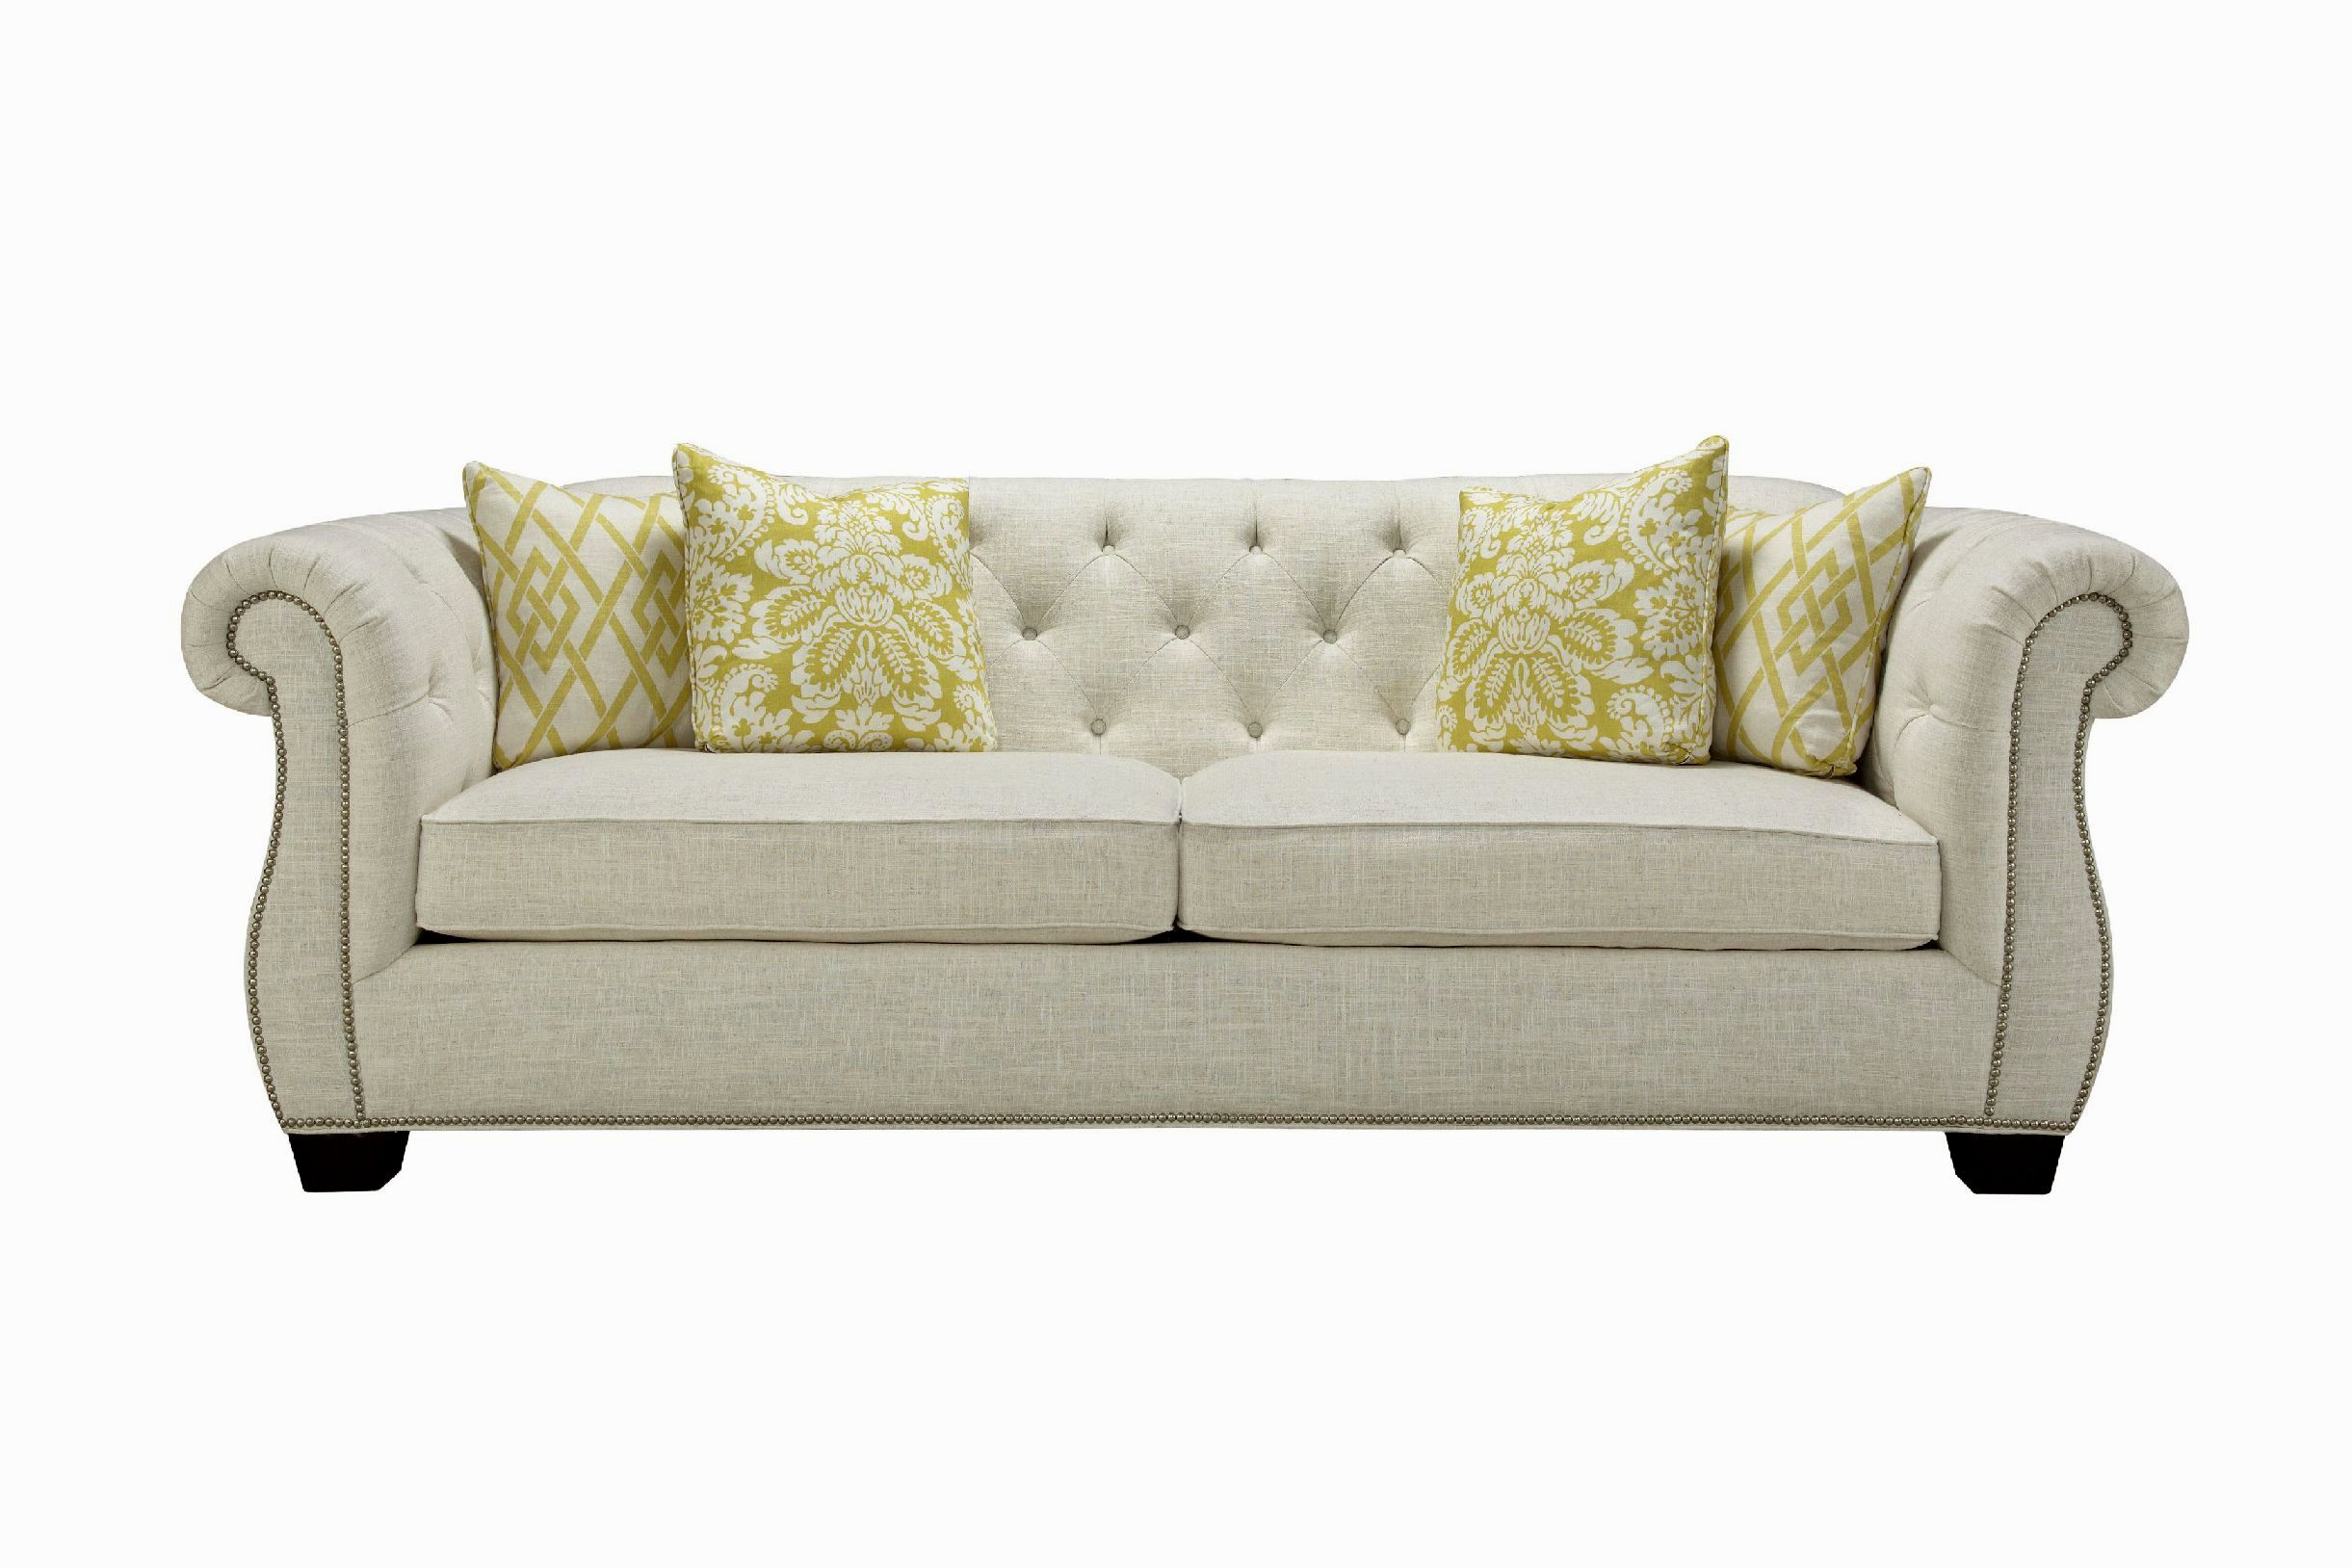 modern sofa mart hours photo-Inspirational sofa Mart Hours Photo